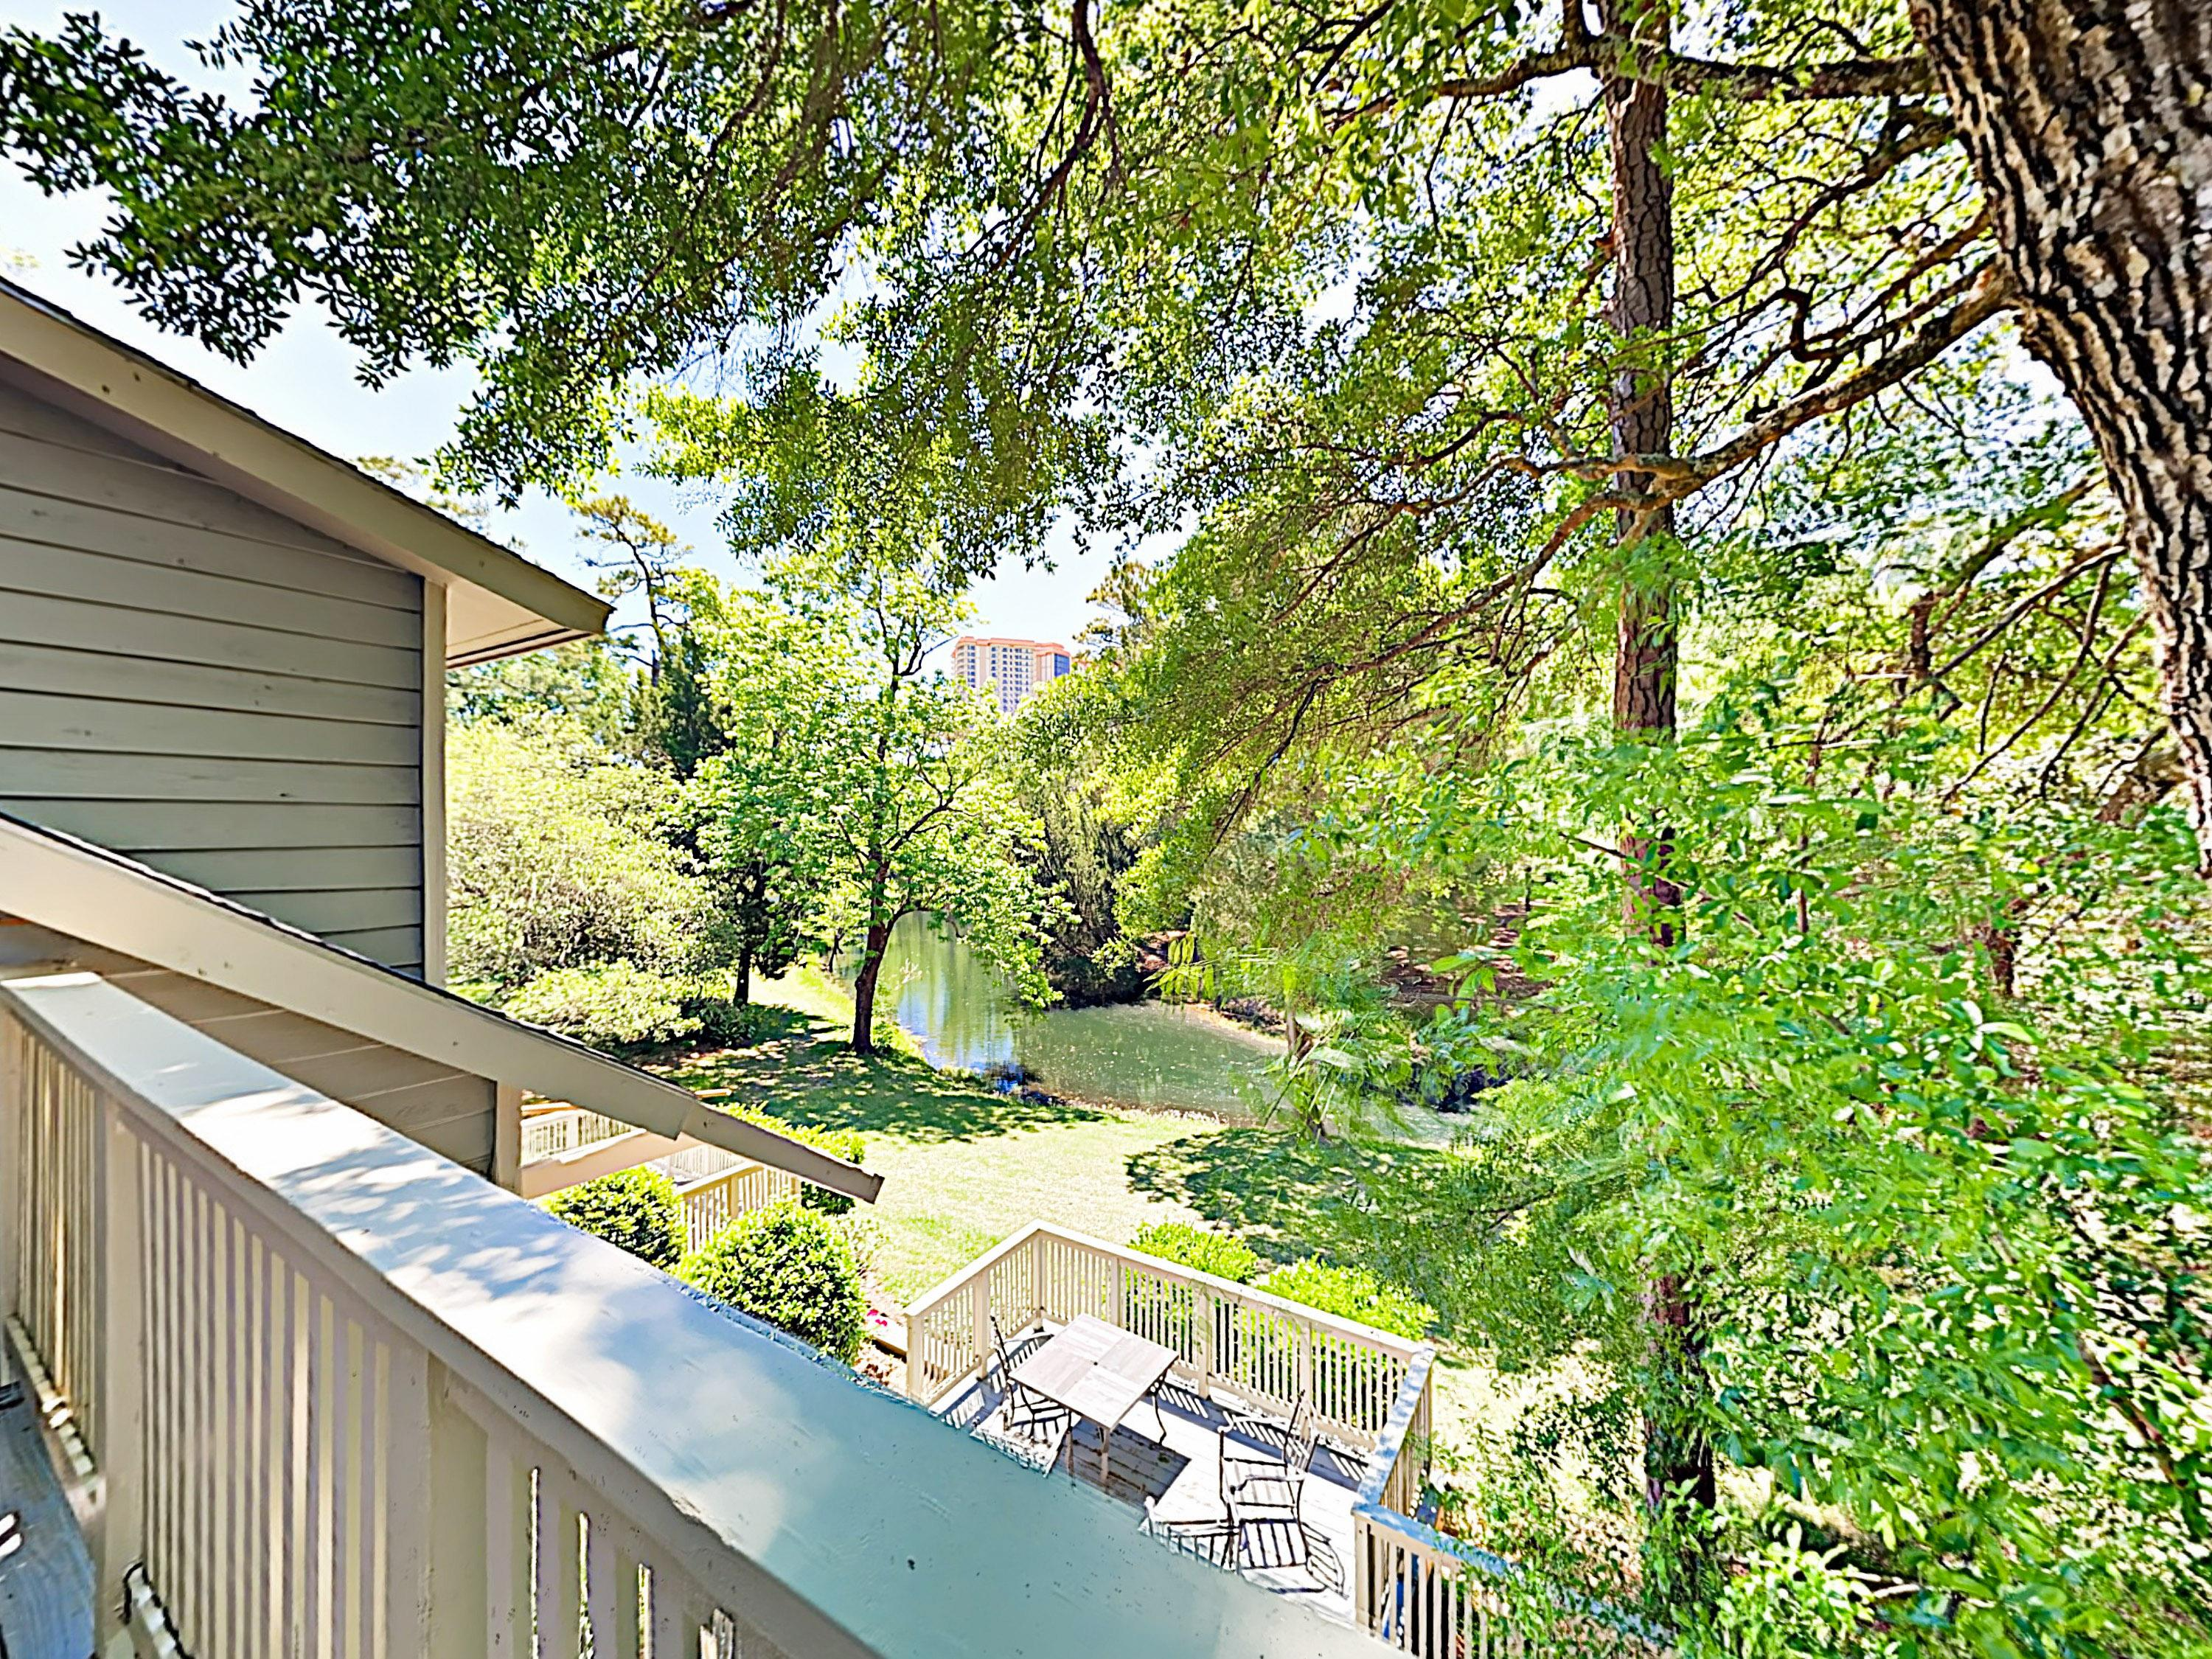 Enjoy views of the wooded landscape from the 2nd-story balcony.